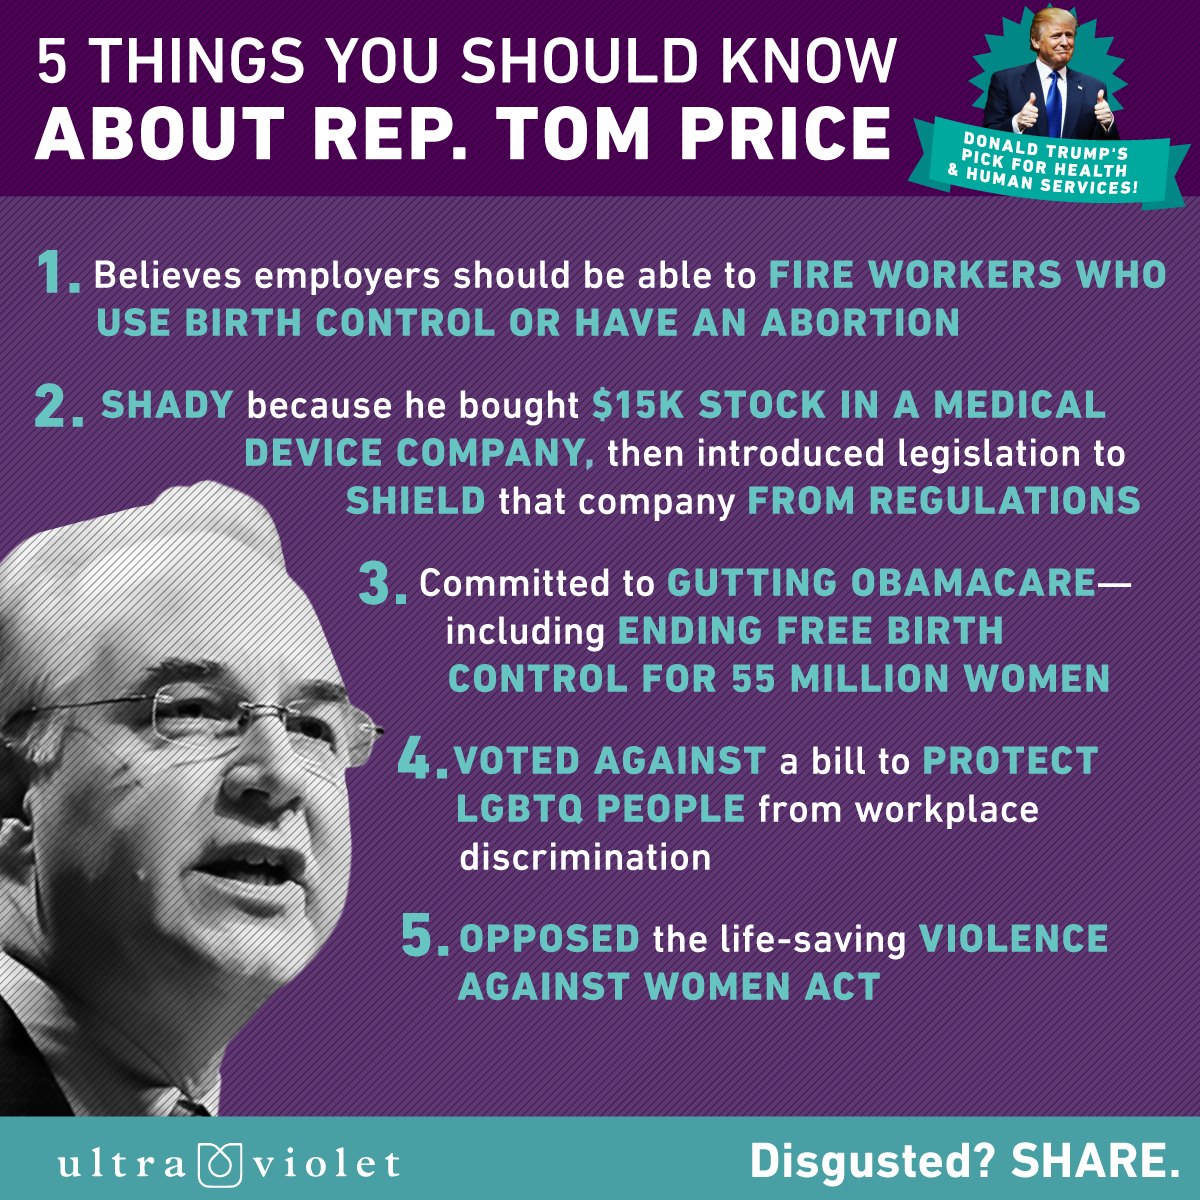 5 Things You Should Know About Rep. Tom Price